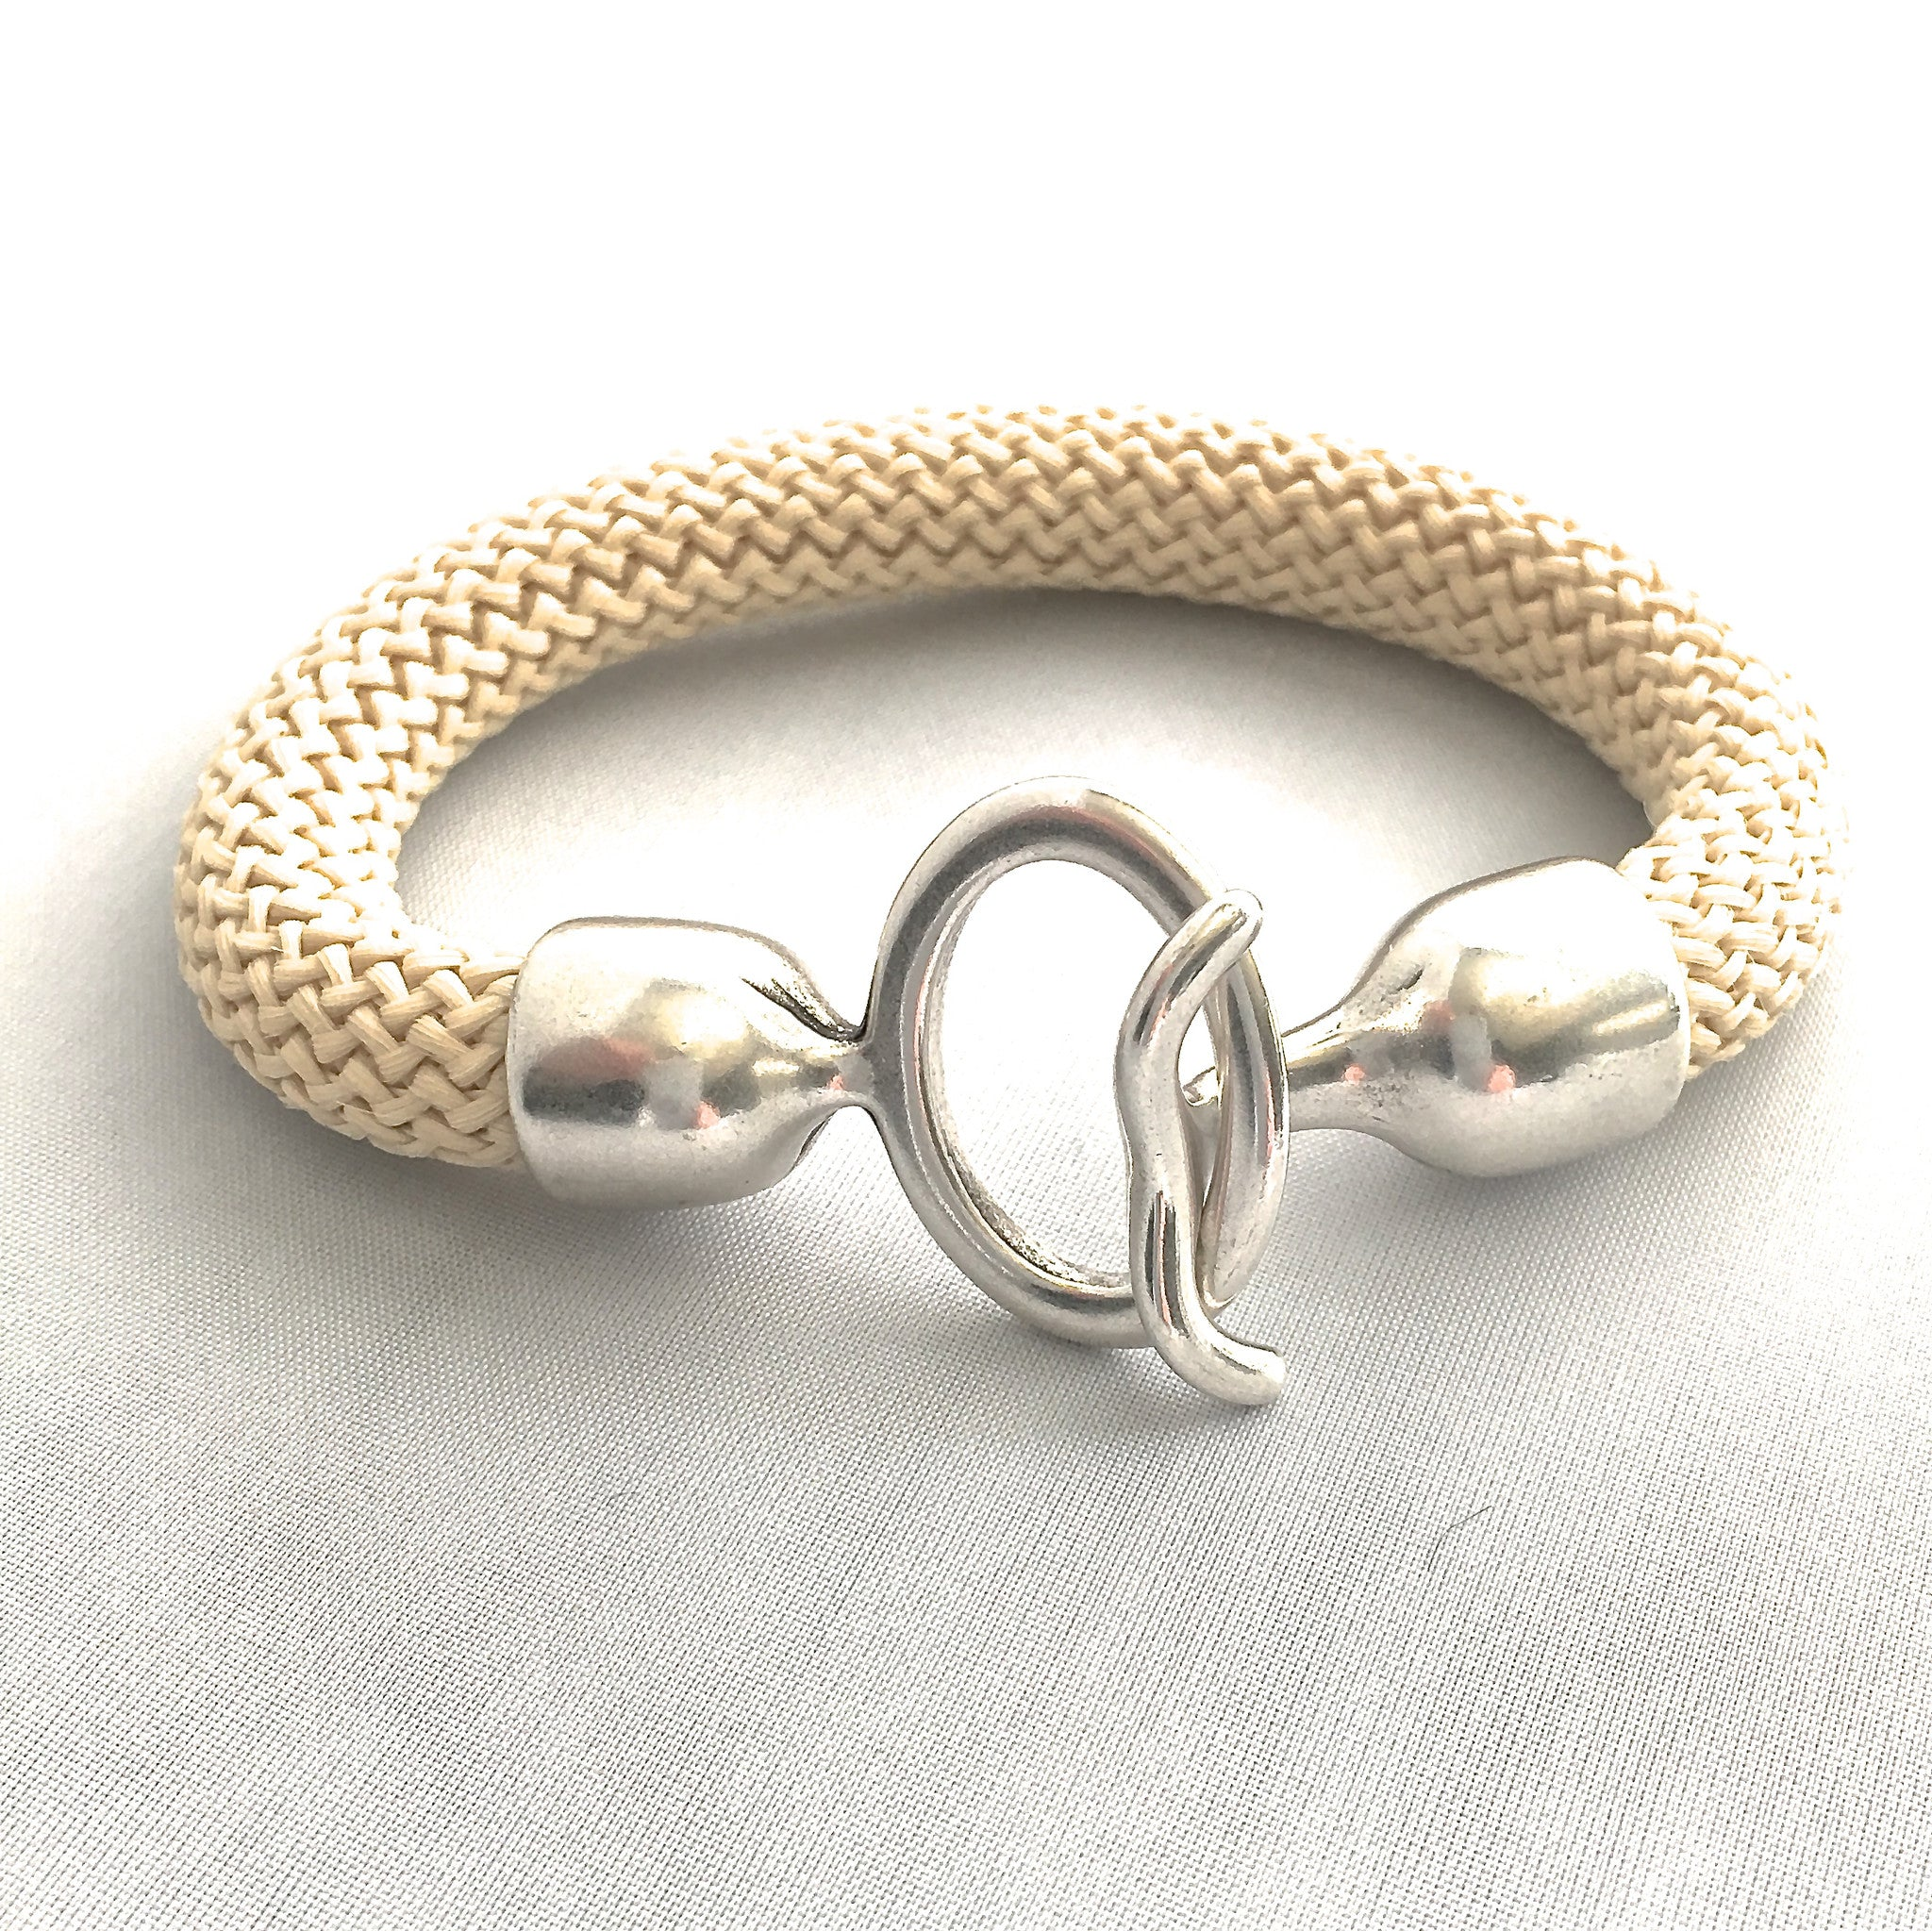 bangles link solid bracelet w lobster product anchormarine anchor chain marine clasp bangle david star gold claw